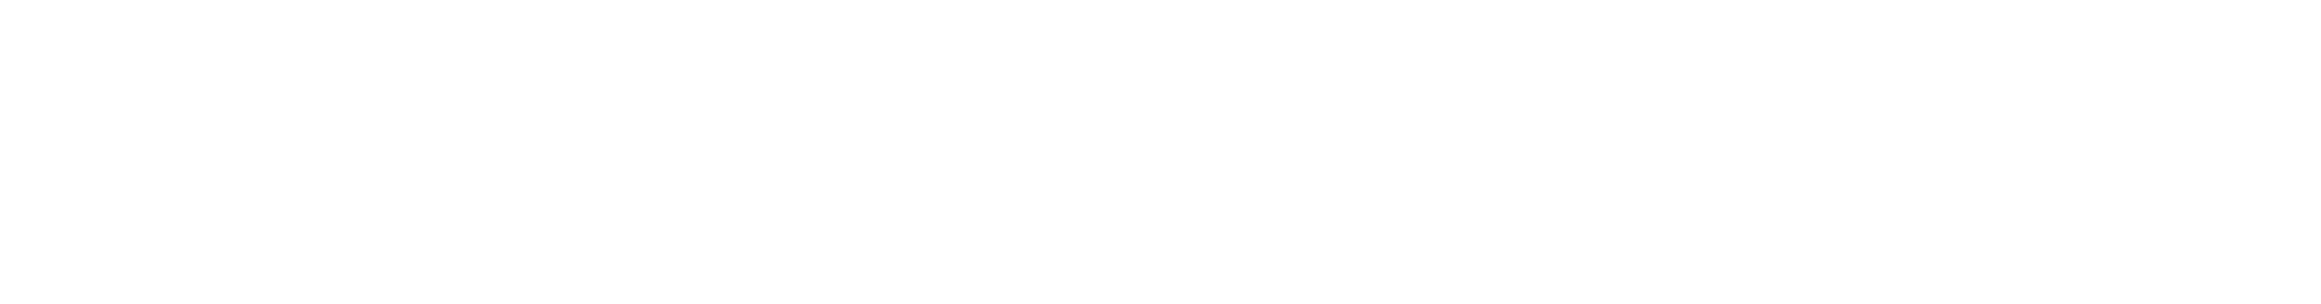 troys concrete pumping logo